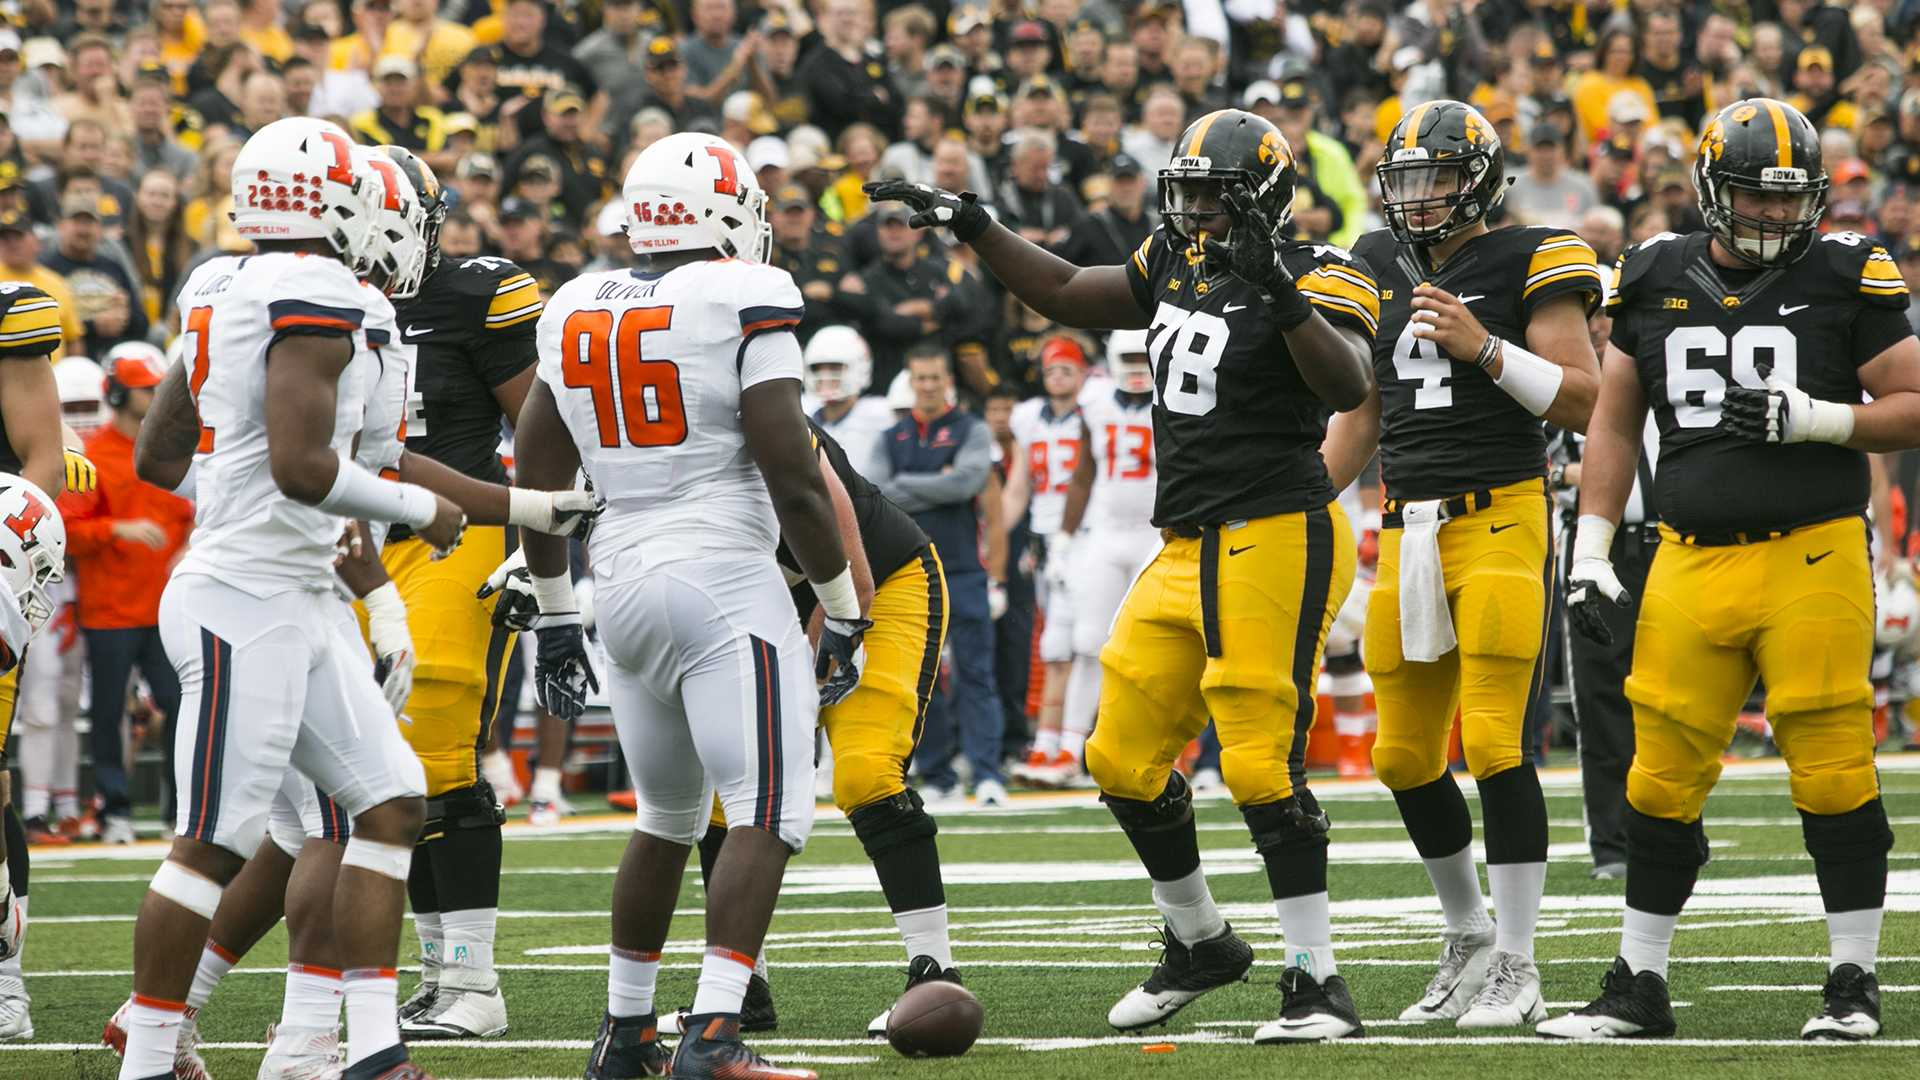 Iowa offensive linemen James Daniels gestures for the crowd to quiet down during an NCAA football game between Iowa and Illinois in Kinnick Stadium on Saturday, Oct. 7, 2017.  The Hawkeyes defeated the Fighting Illini, 45-16. (Joseph Cress/The Daily Iowan)